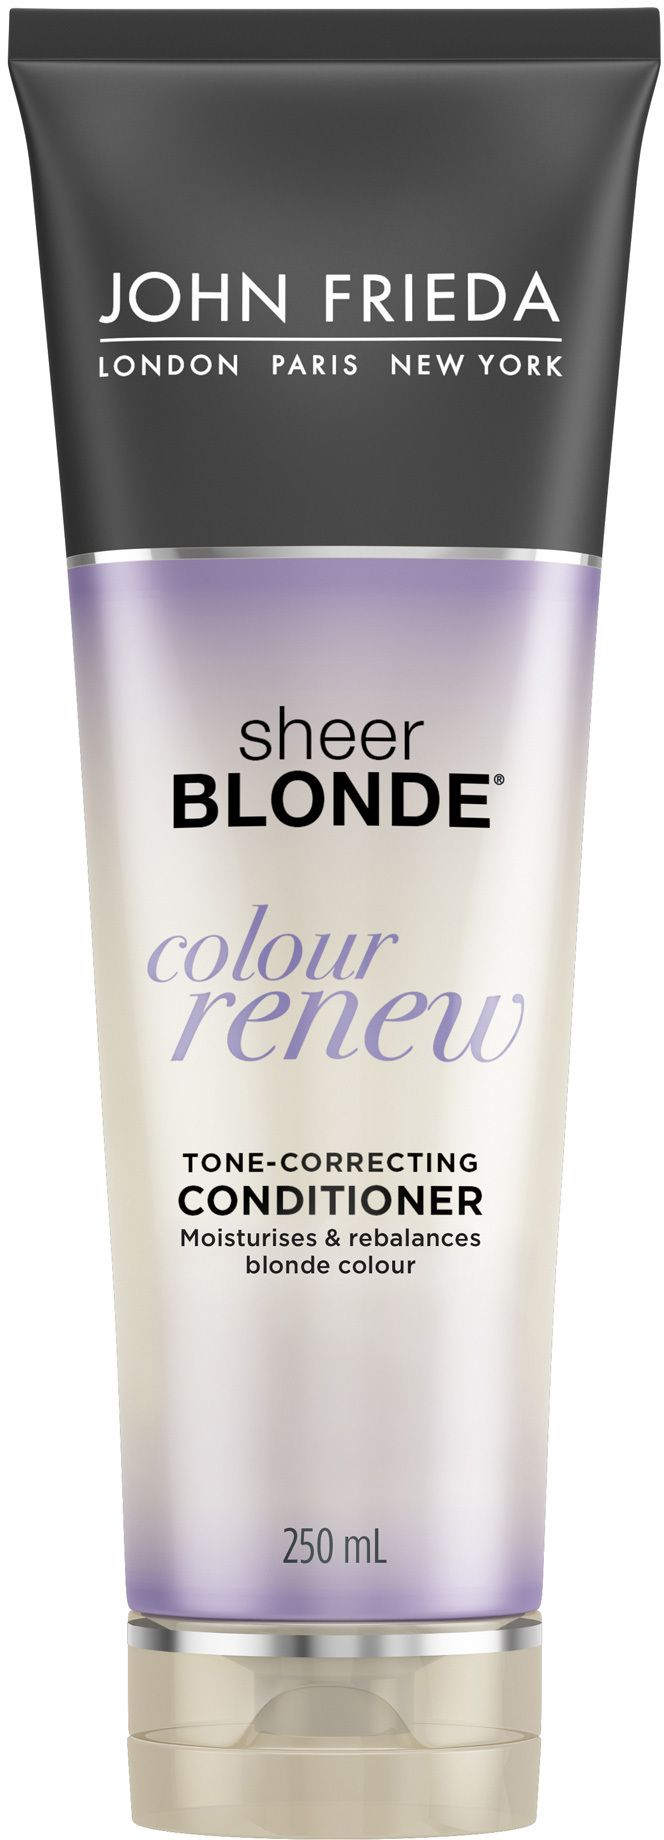 John Frieda Sheer Blonde Colour Renew Tone Correcting Conditioner Is A Conditioner That Renews Colour By Reversing The Look John Frieda Purple Shampoo Shampoo